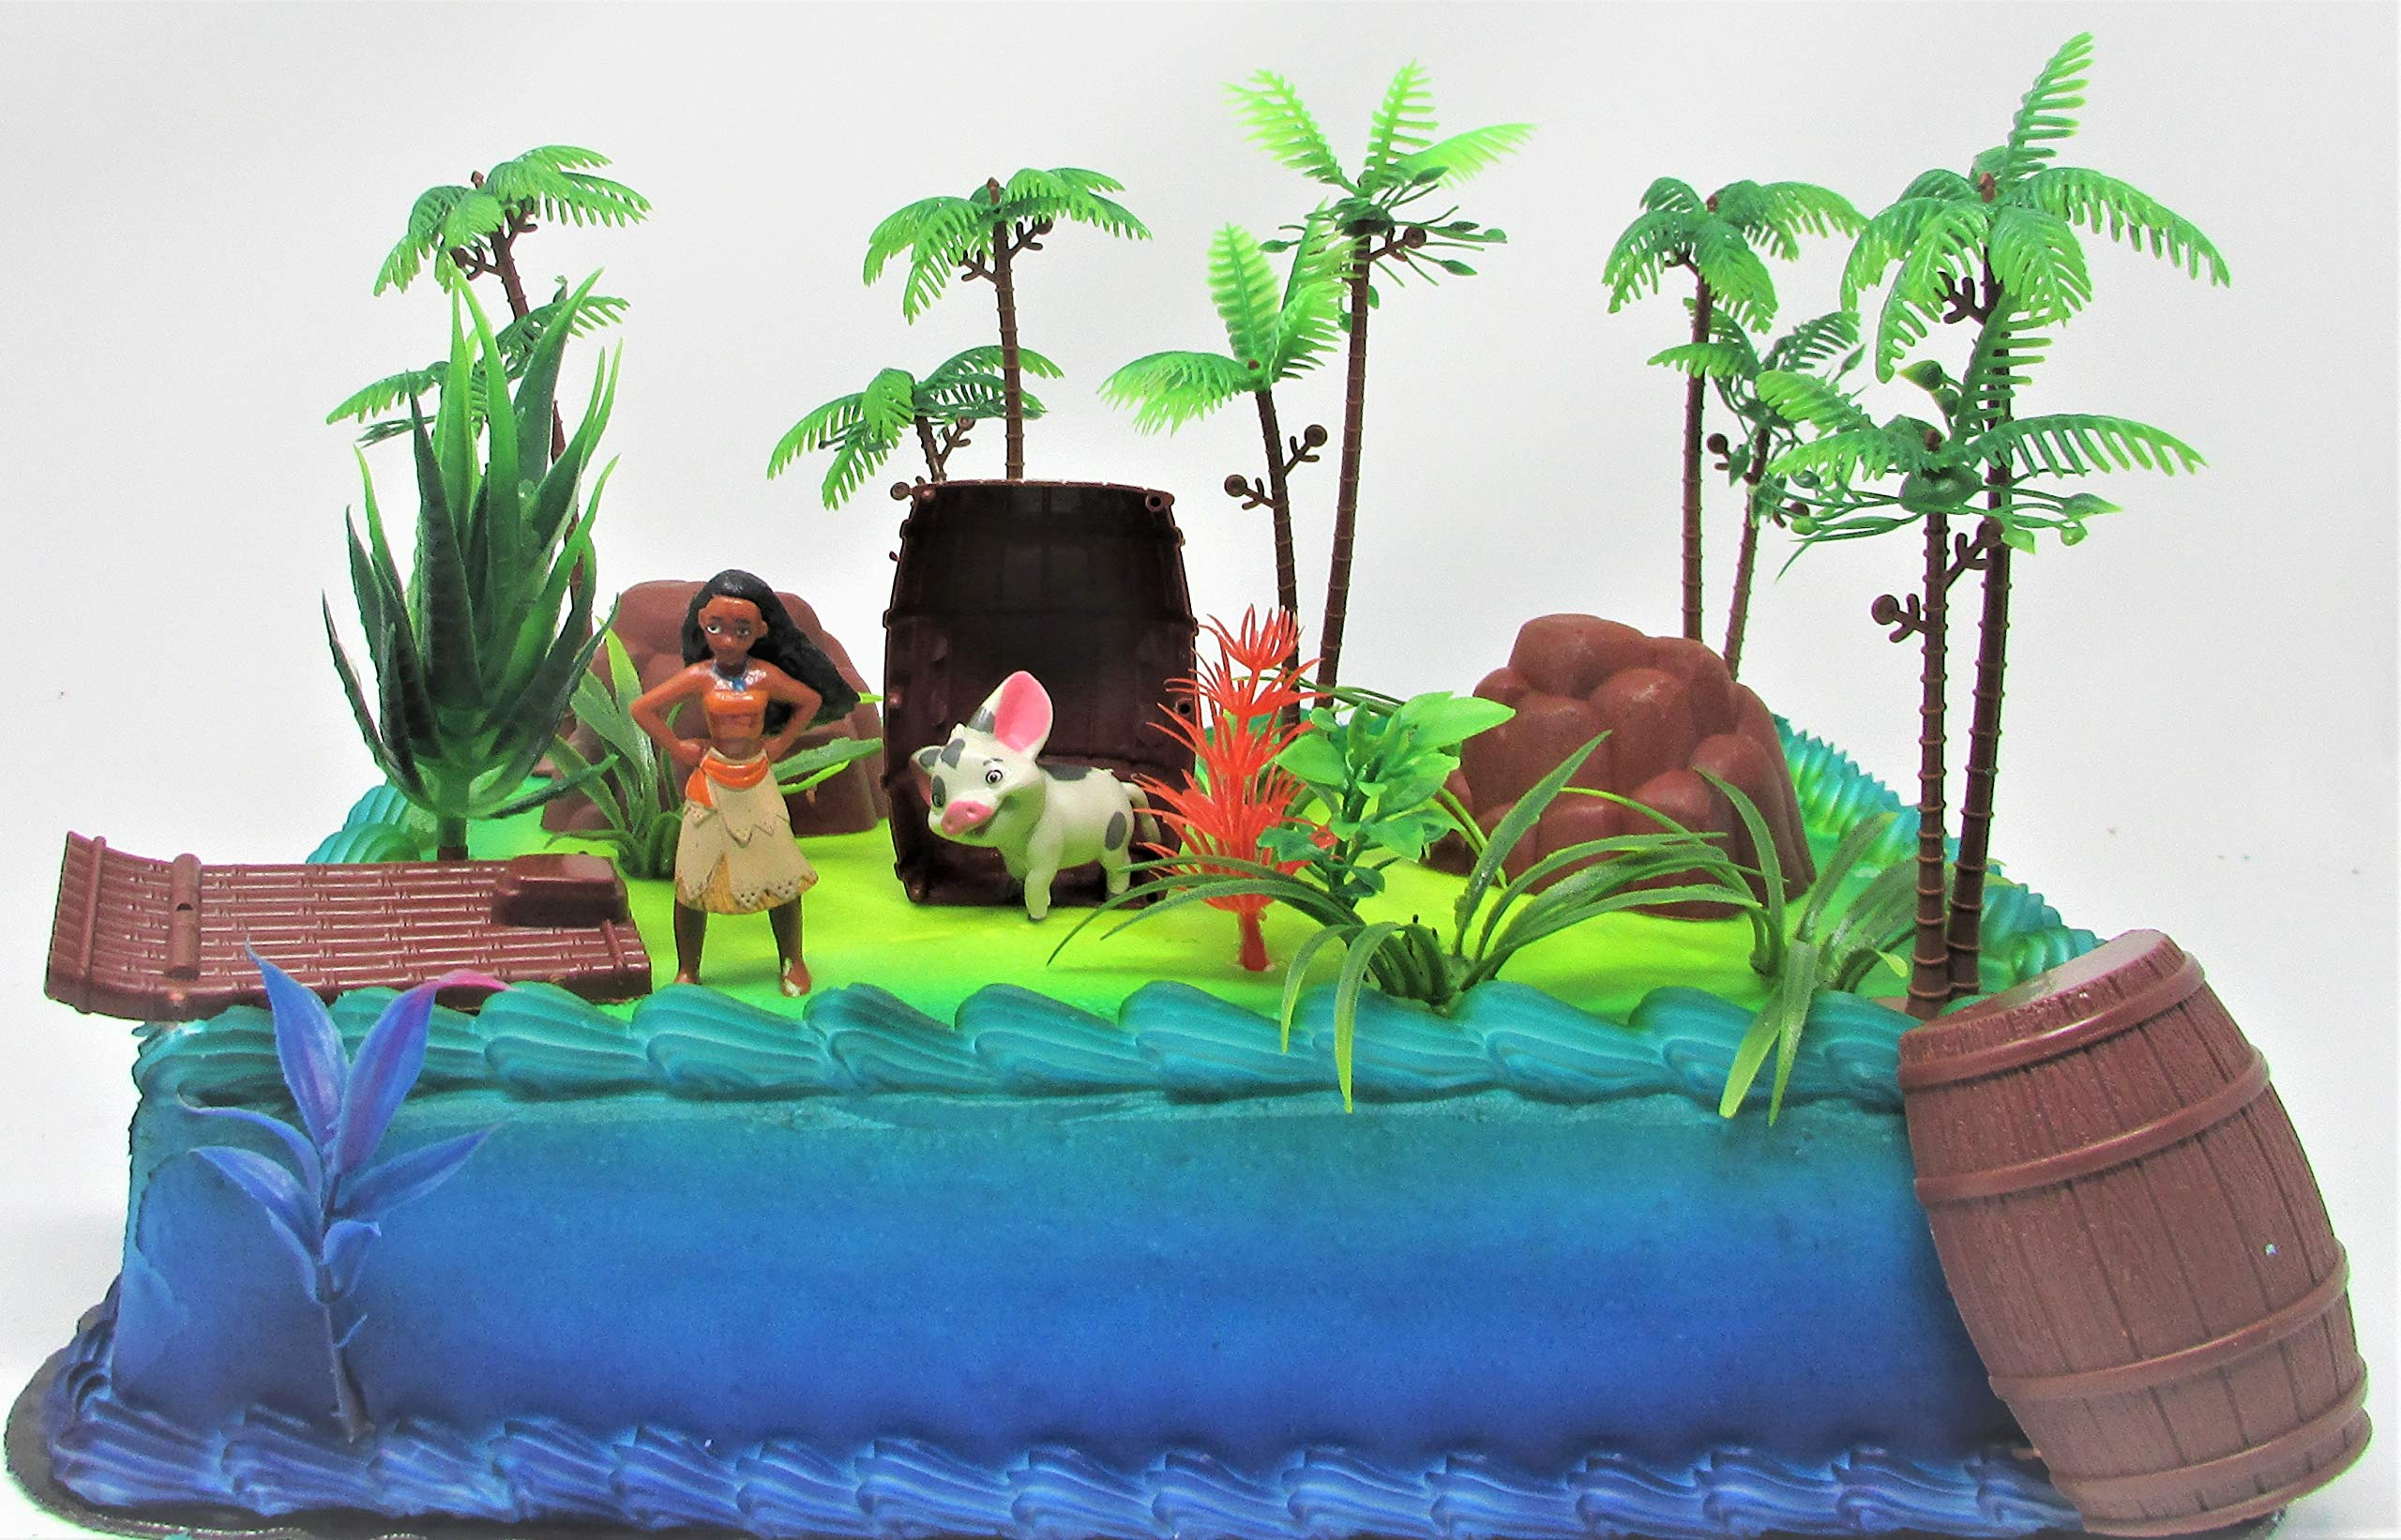 Moana Tropical Themed Birthday Cake Topper Set Featuring Moana Figure and Decorative Accessories